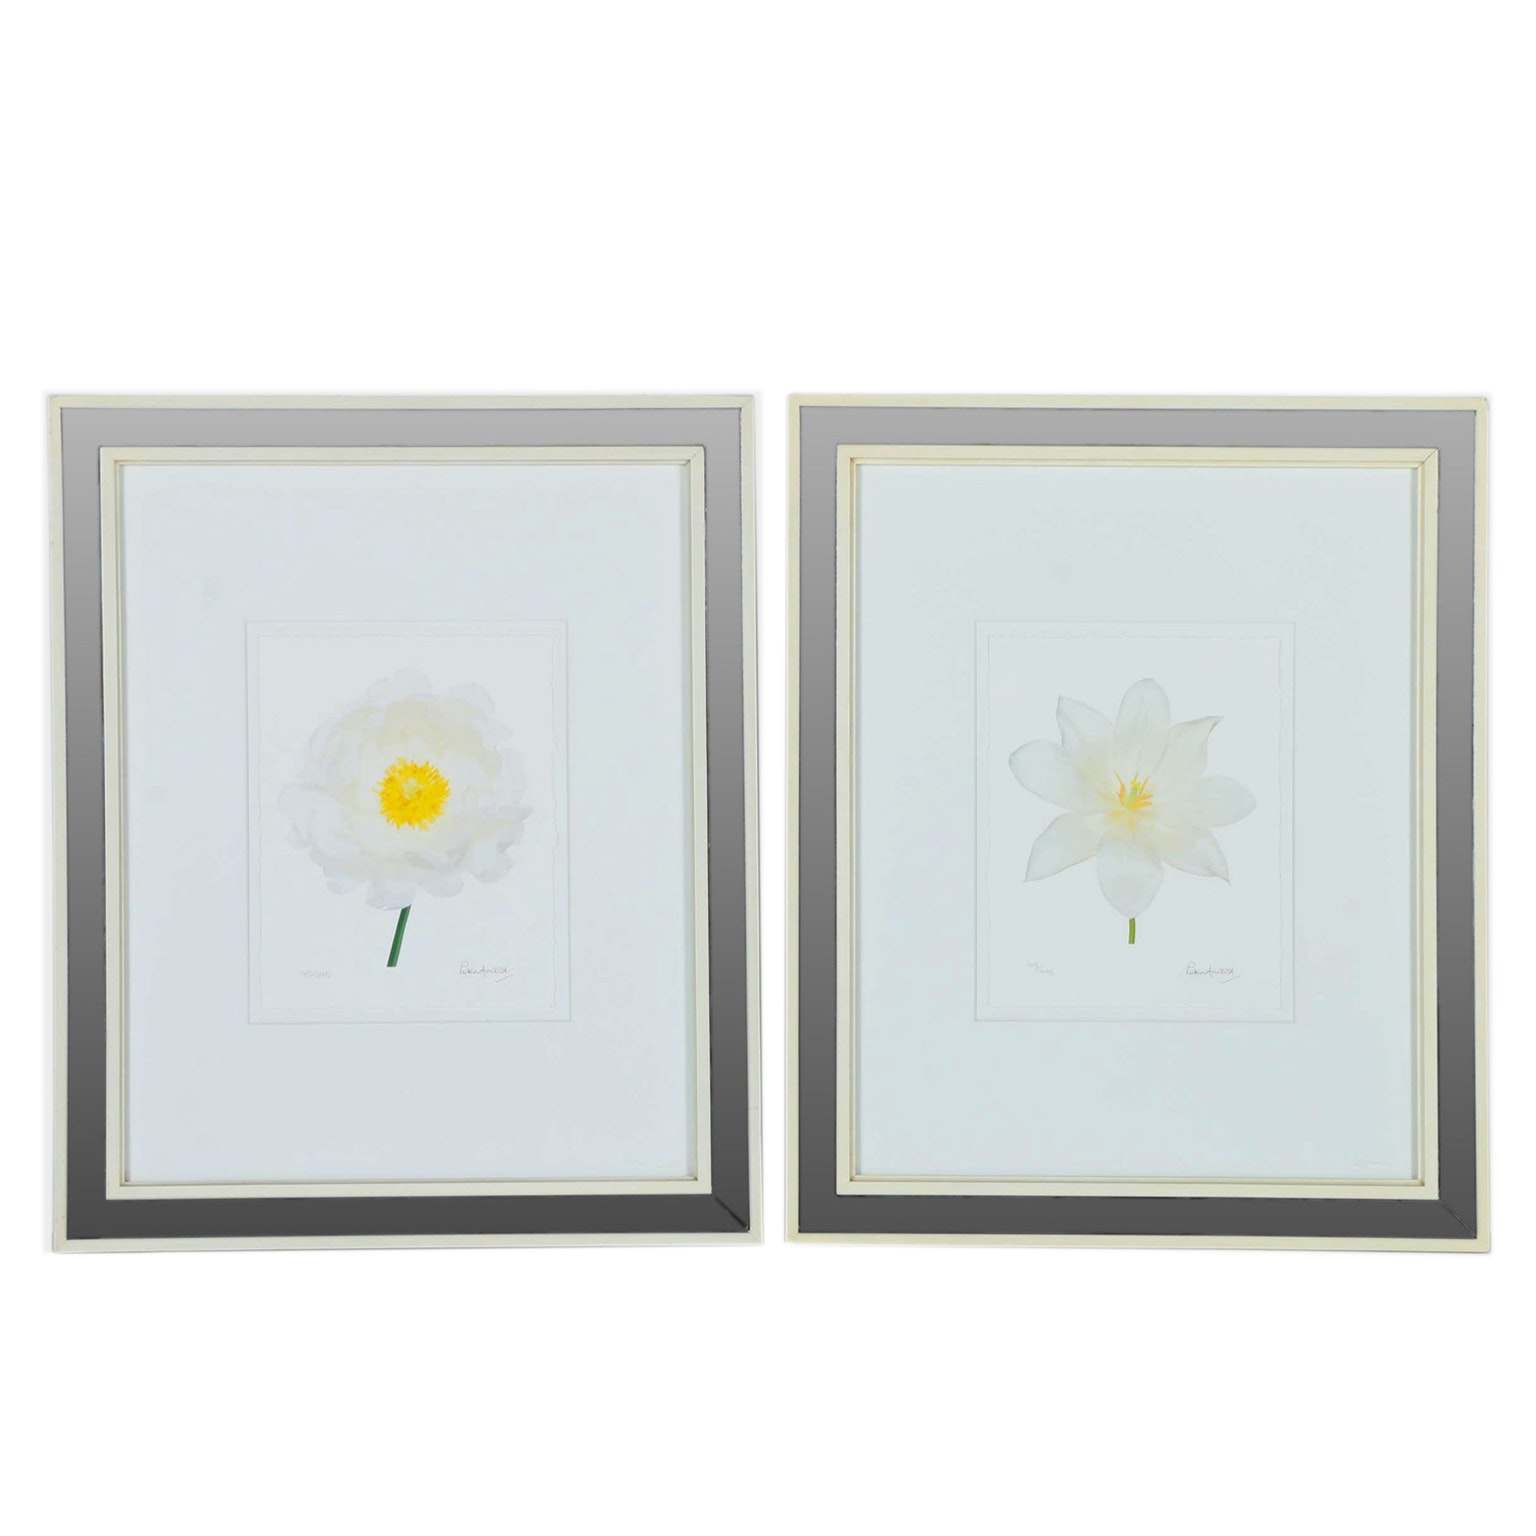 Peter Arnold Limited Edition Giclée Prints of White Flowers